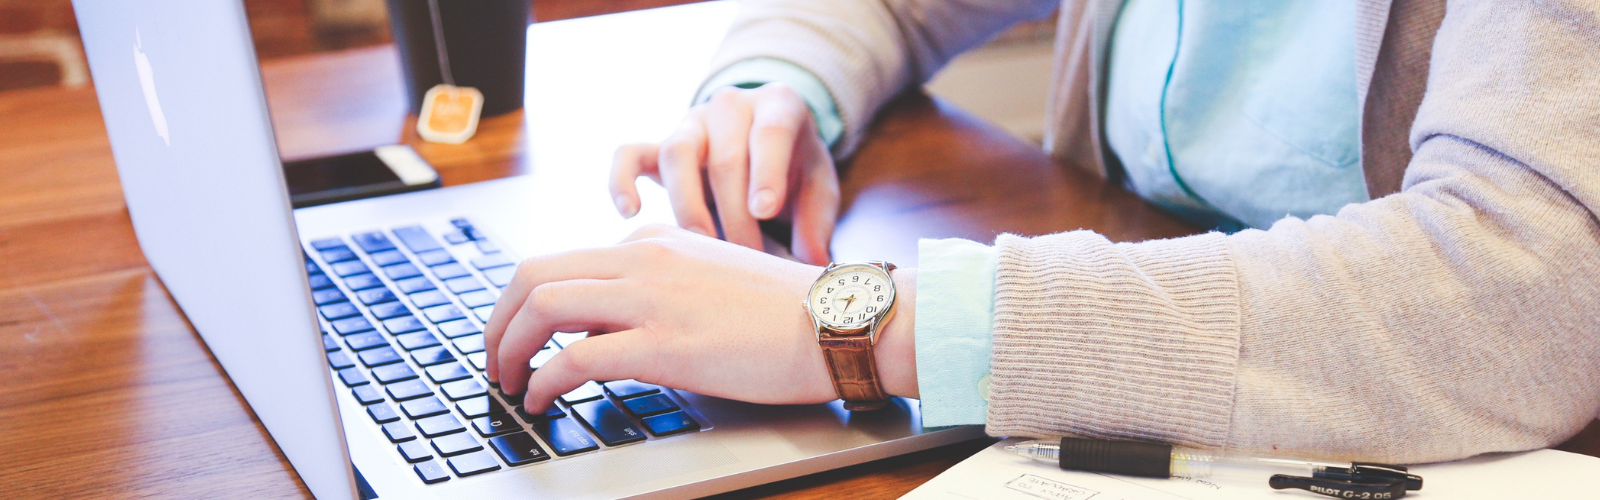 5 Tips for Starting a Business with a Full-Time Job